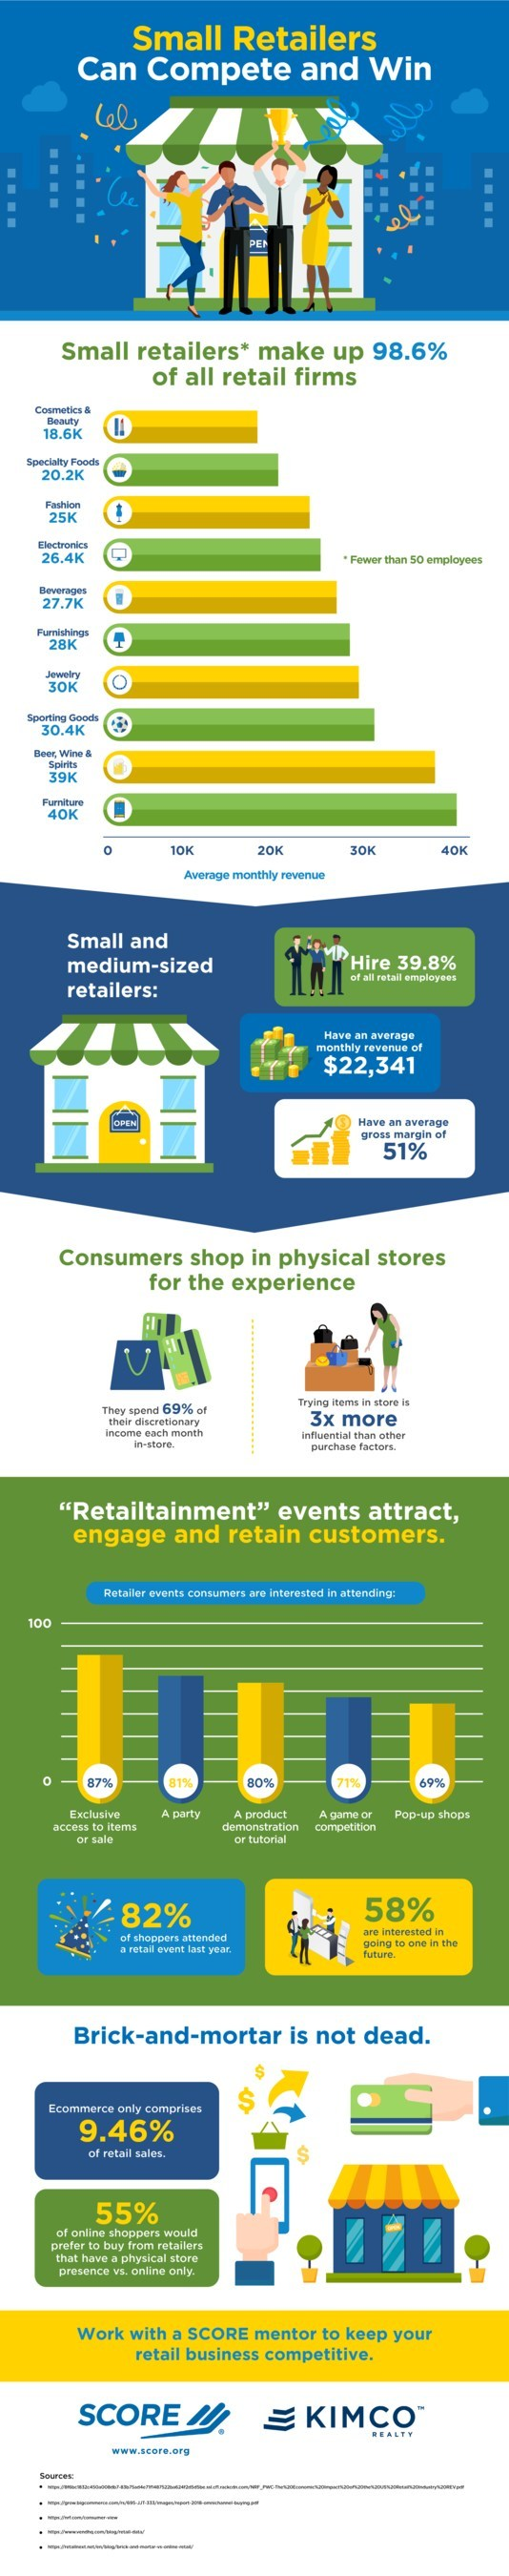 Small retailer businesses make up 98.6% of all retail firms, and employ nearly 40% of all retail workers, according to new data gathered by SCORE, mentors to America's small businesses, in honor of National Independent Retailer Month. Data also shows small brick-and-mortar retailers are remaining competitive by creatively engaging online to bring customers into their stores.